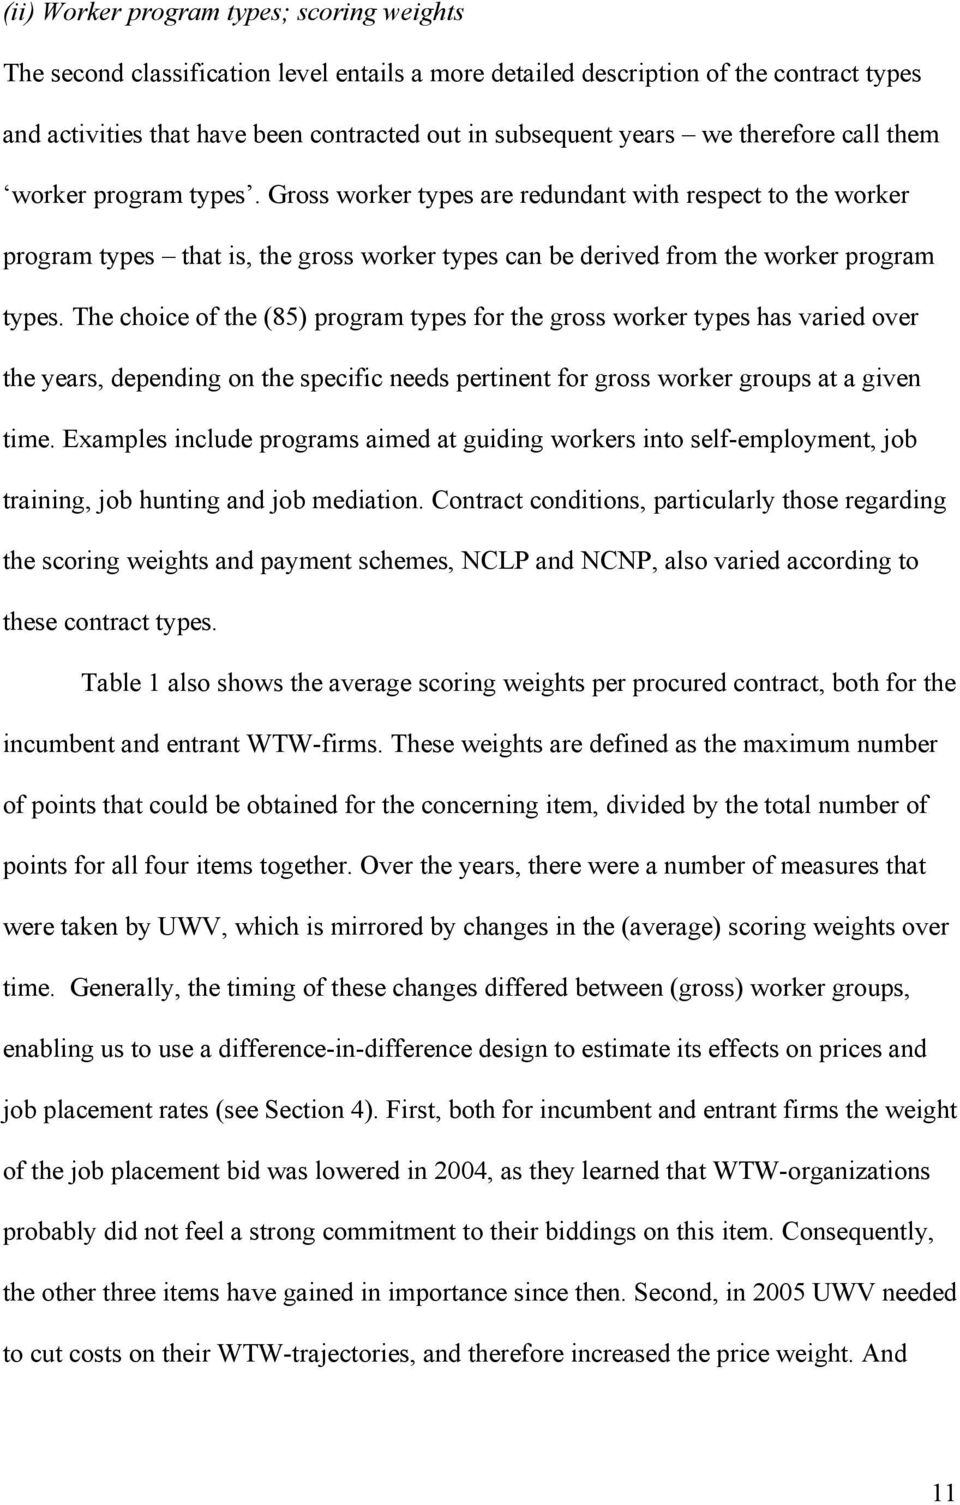 The choice of the (85) program types for the gross worker types has varied over the years, depending on the specific needs pertinent for gross worker groups at a given time.